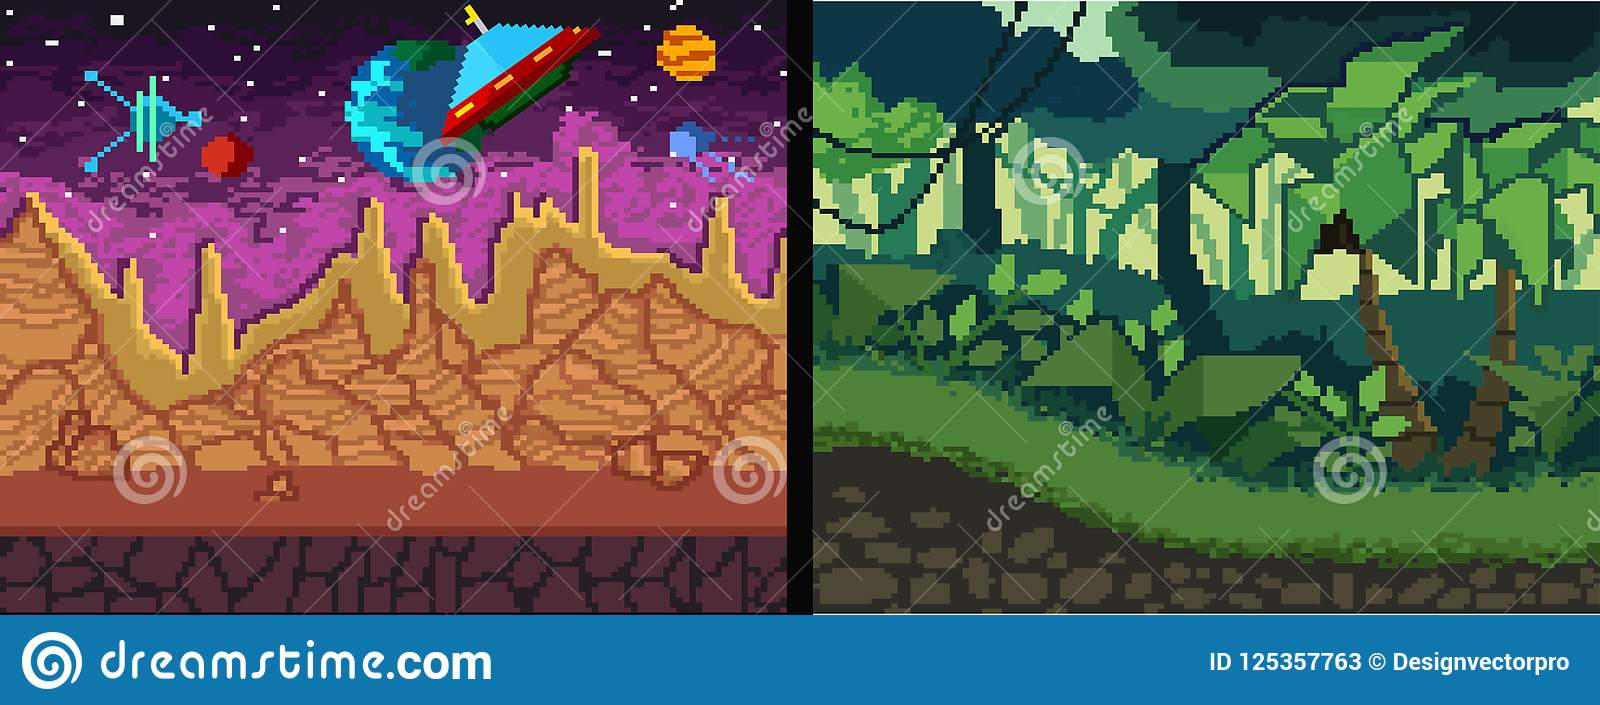 pixel art backgrounds set pixel jungle and space theme for game